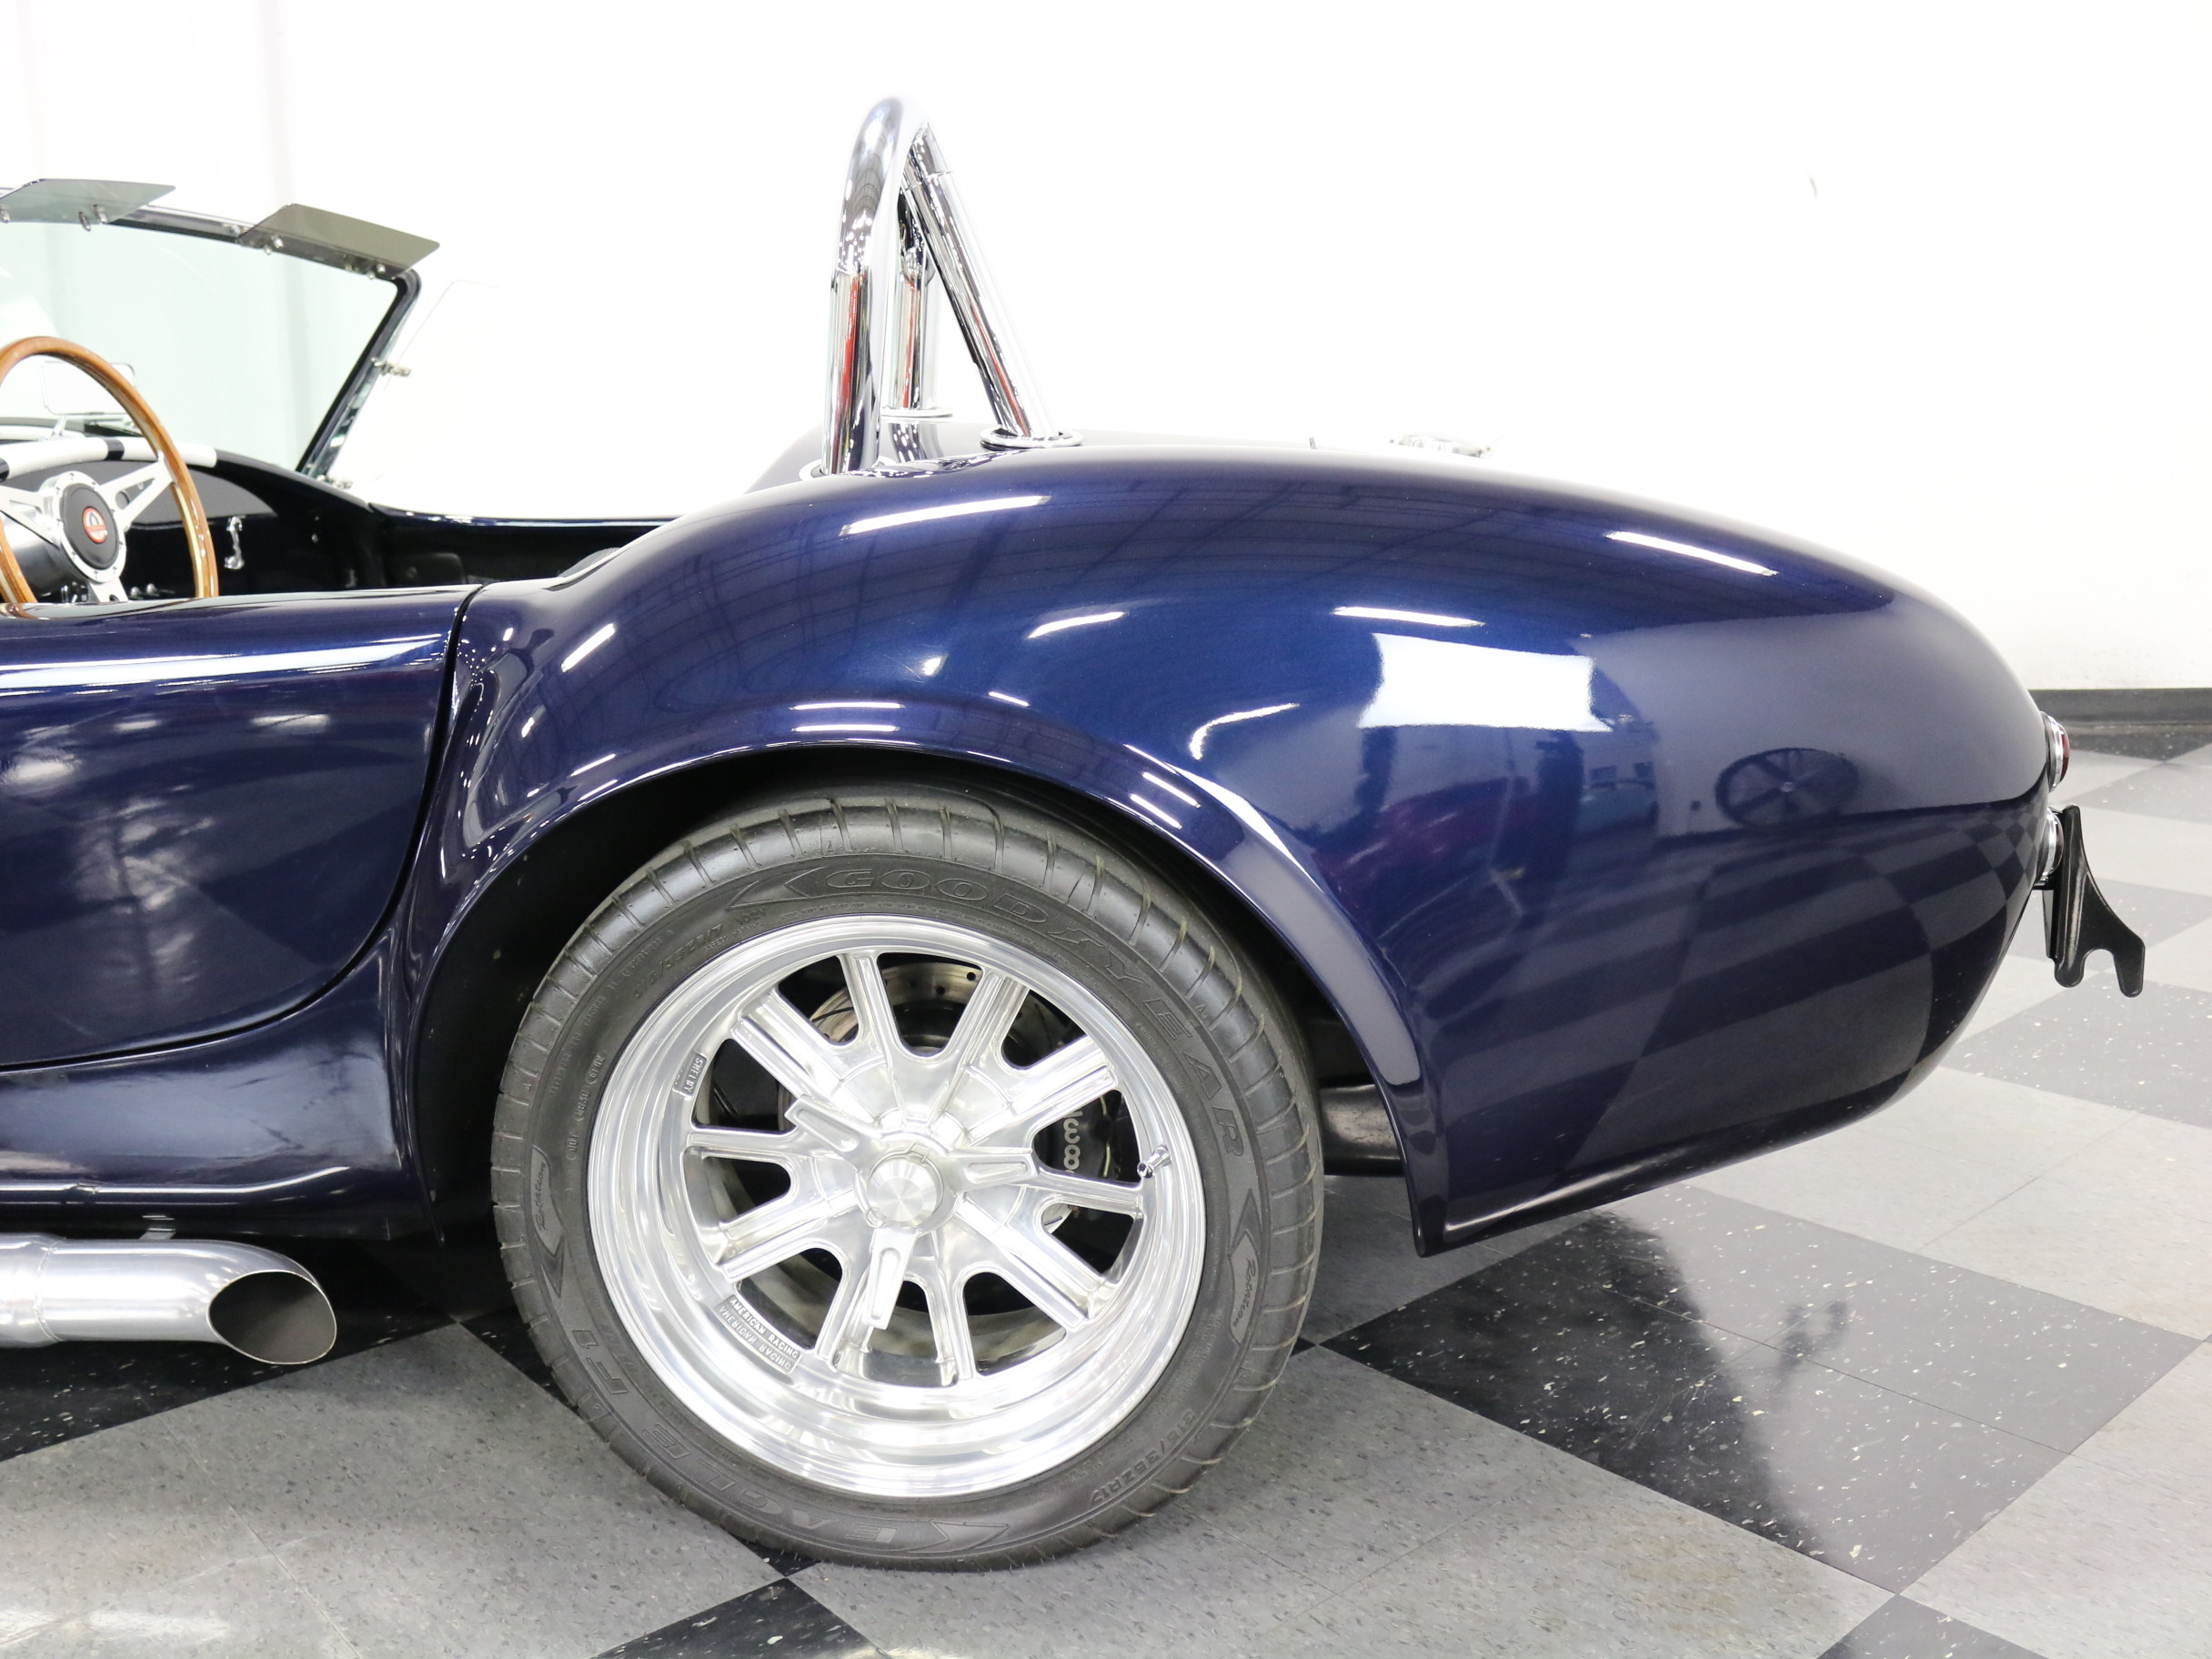 1967 Shelby Cobra Replica: BEAUTIFUL & FRESH SHELL VALLEY, 351CI WINDSOR V8, 5 SPEED, 4 WHEEL WILWOOD DISCS